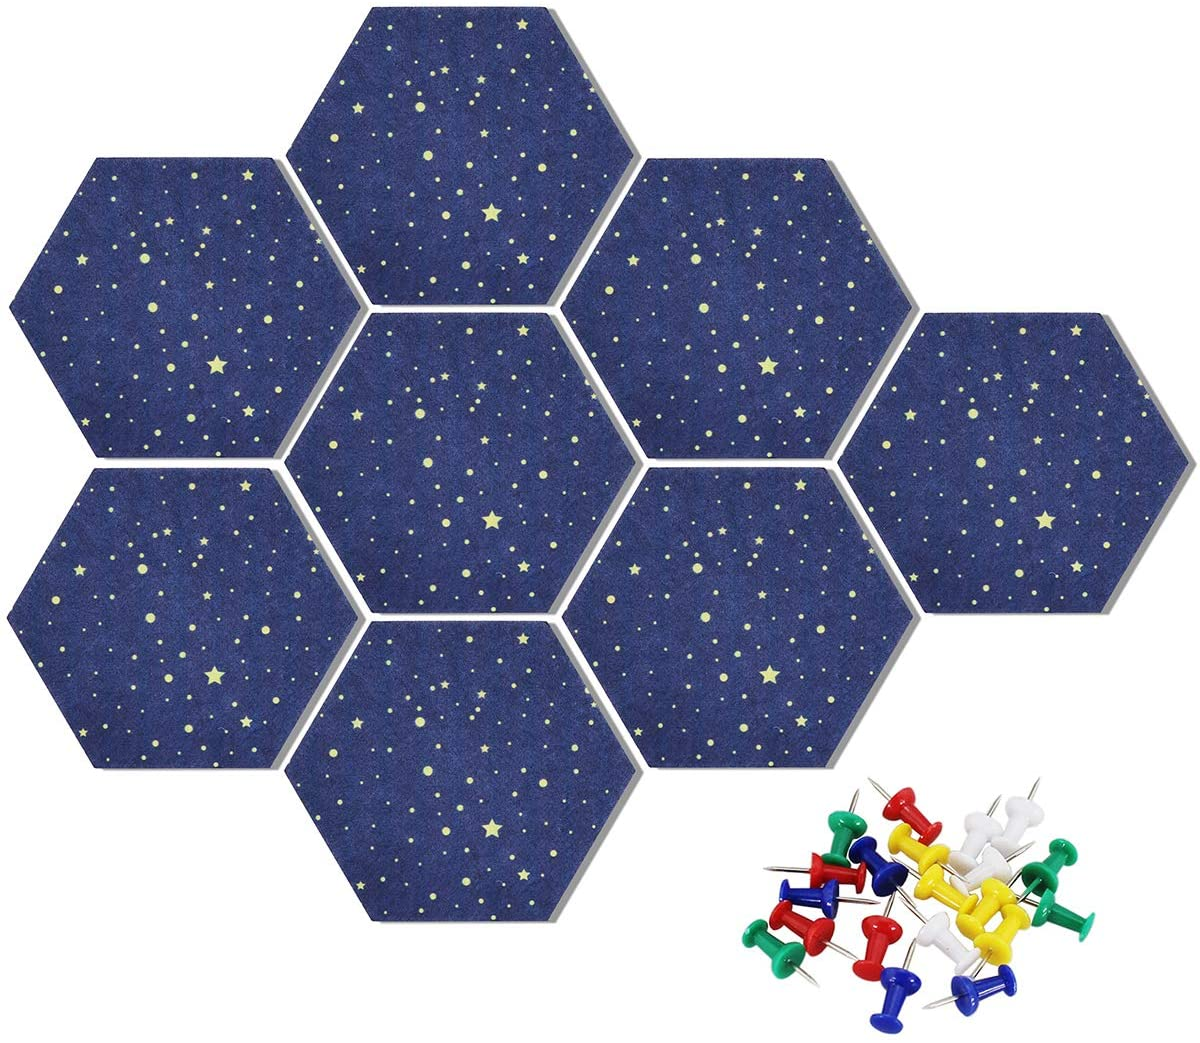 Pack of 6 Bulletin Board Notice Boards for Home Office Kitchen Uoisaiko Large 30x30cm Felt Board Tiles with 30 Pins Self Adhesive Pin Board Wall Tiles for Photos Memos